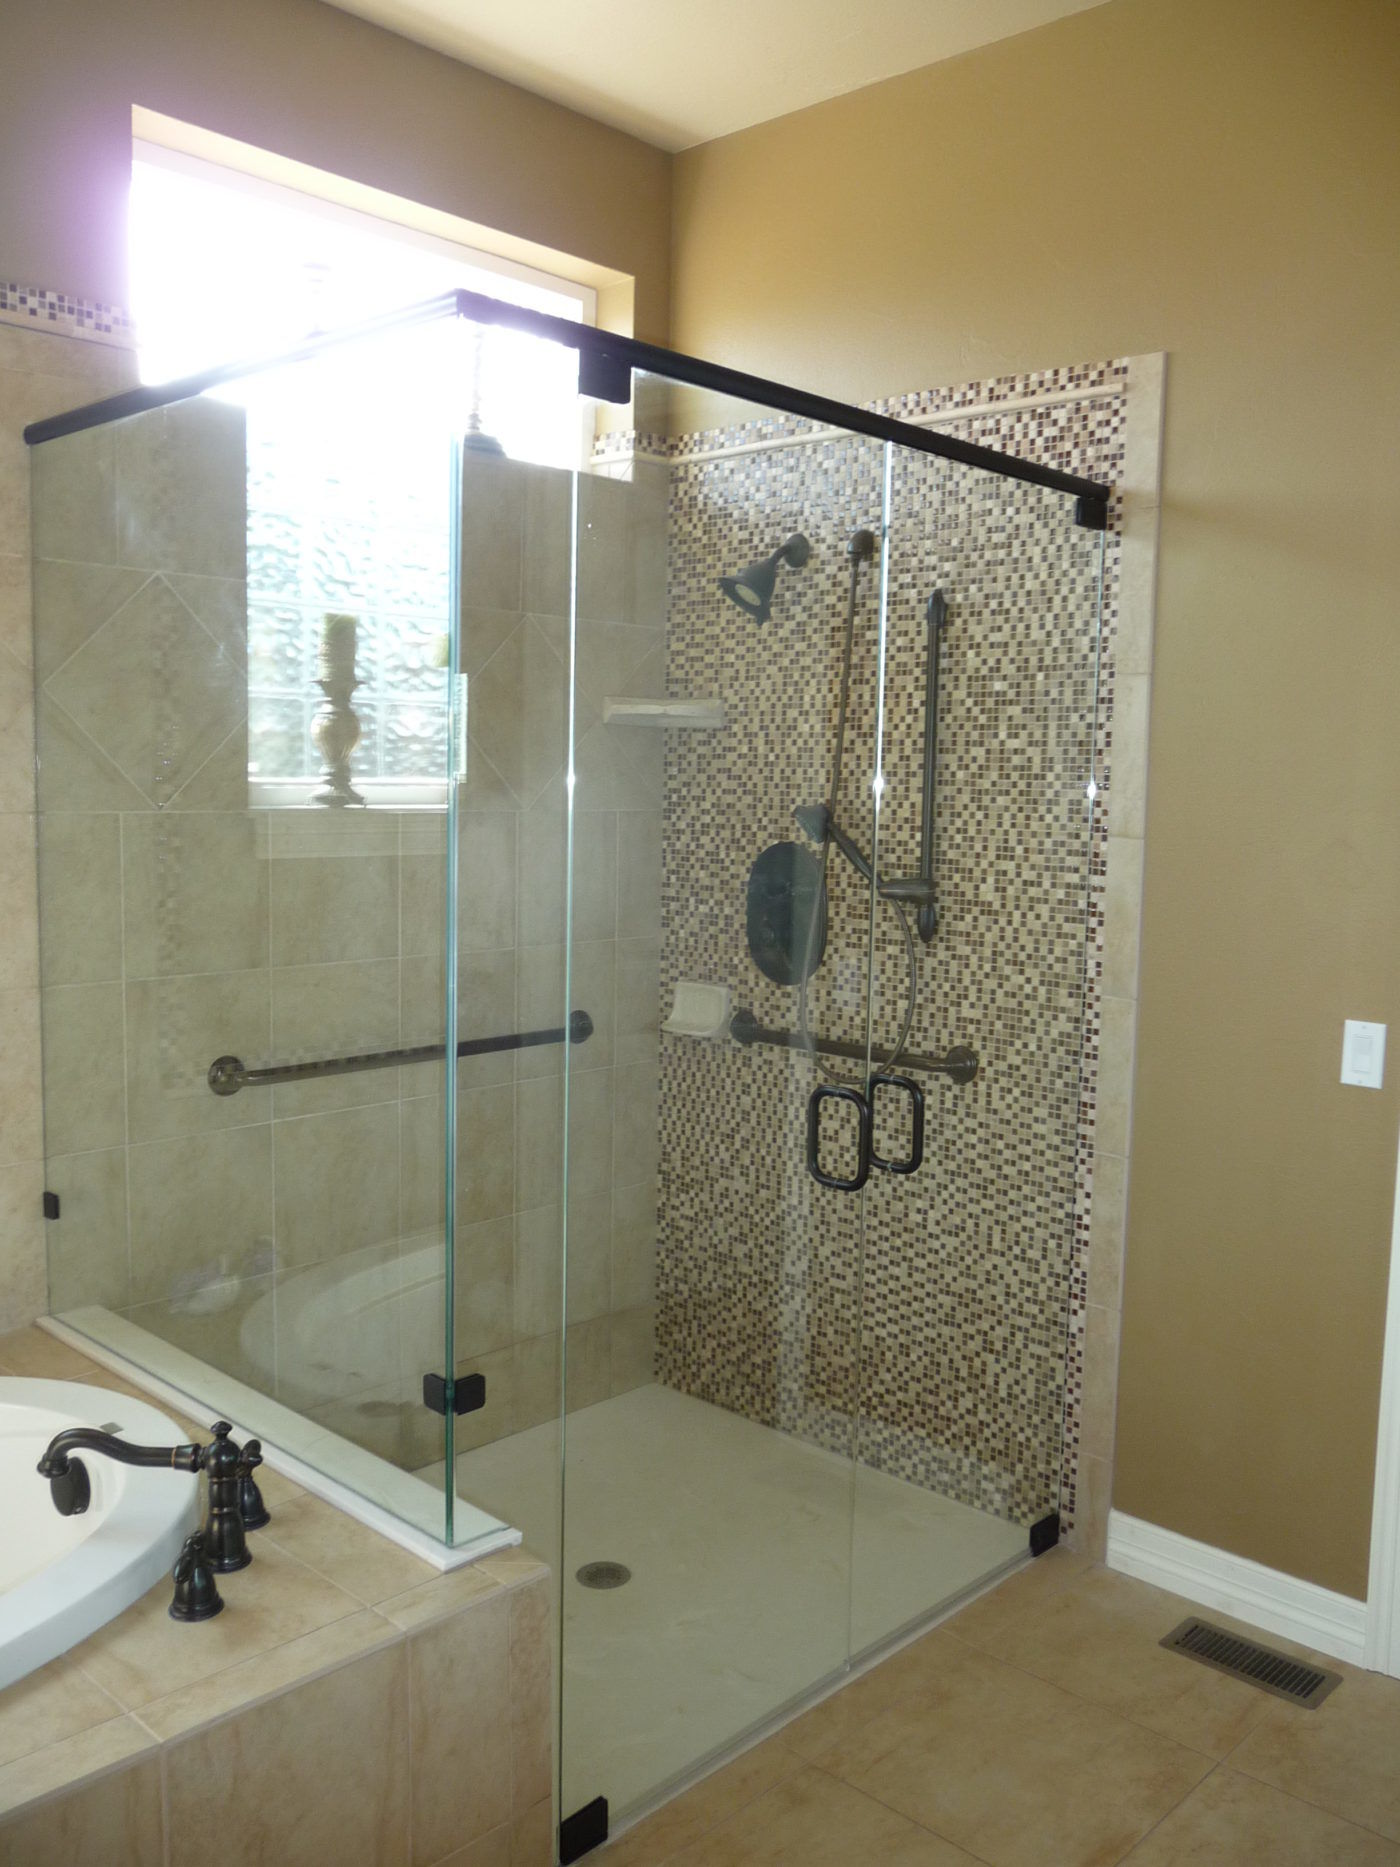 Euro Style Bathroom With Glass Doors Castle Rock CO  Accessible Systems